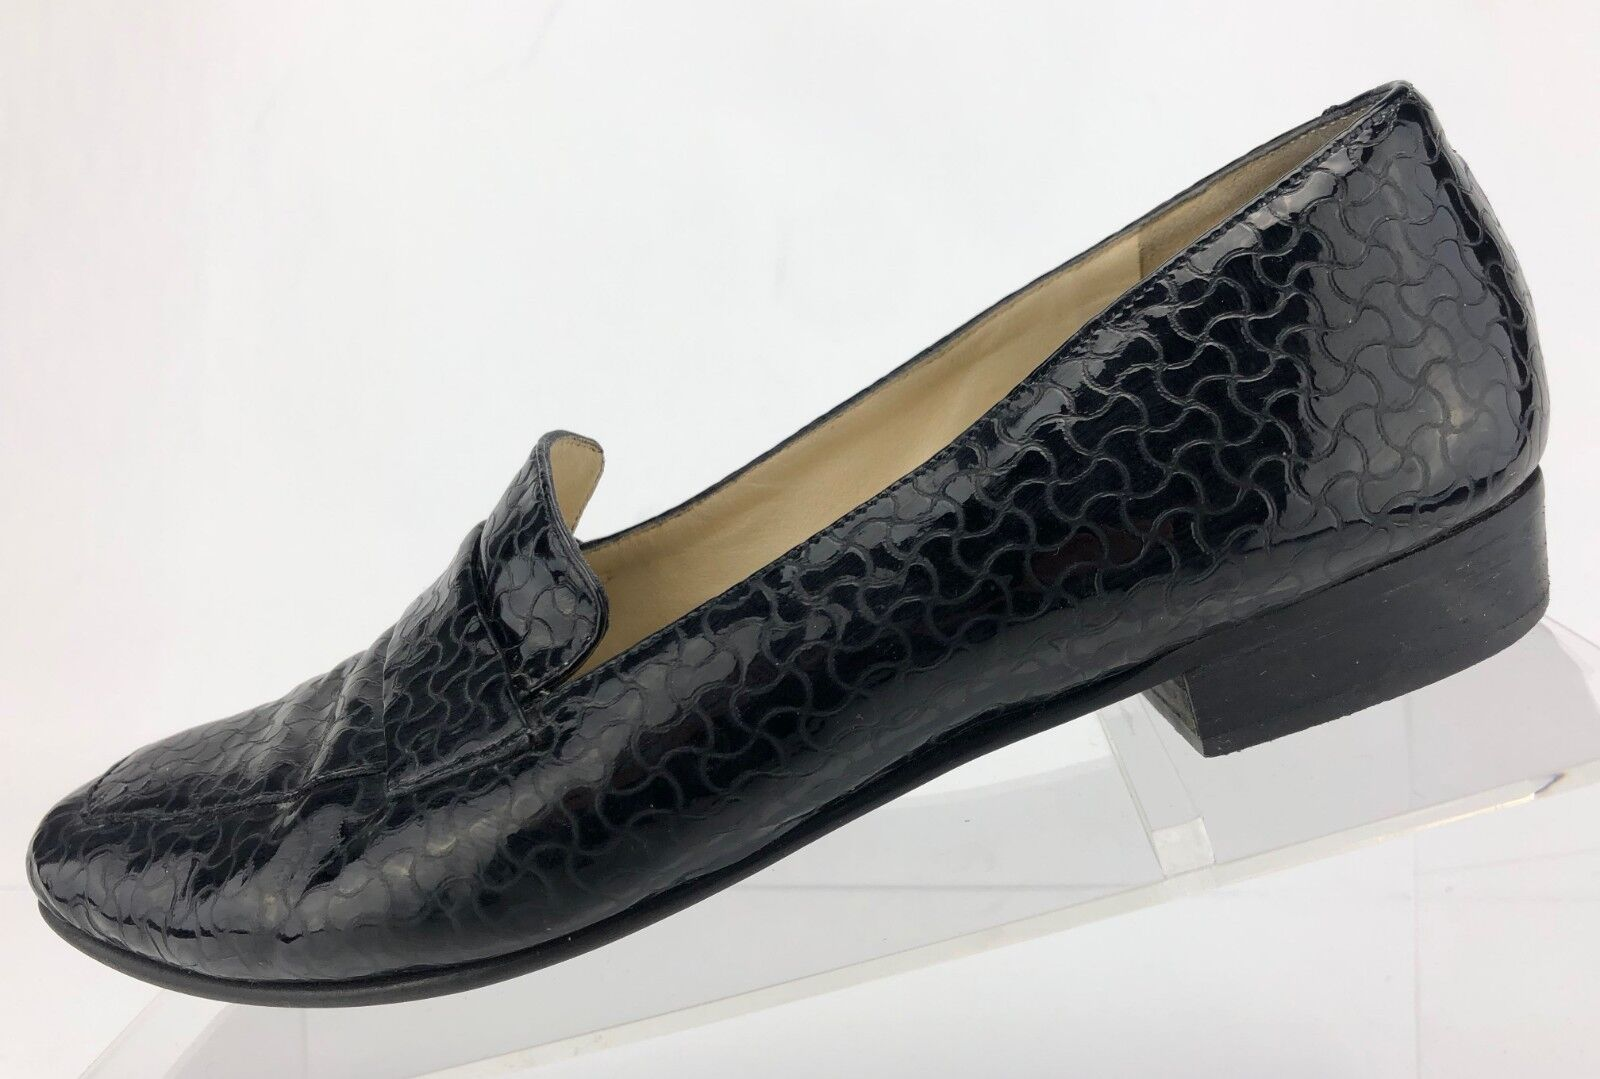 Bally Casual Loafers Black Patent Embossed Leather Slip On Italy Womens Sz 6.5 M